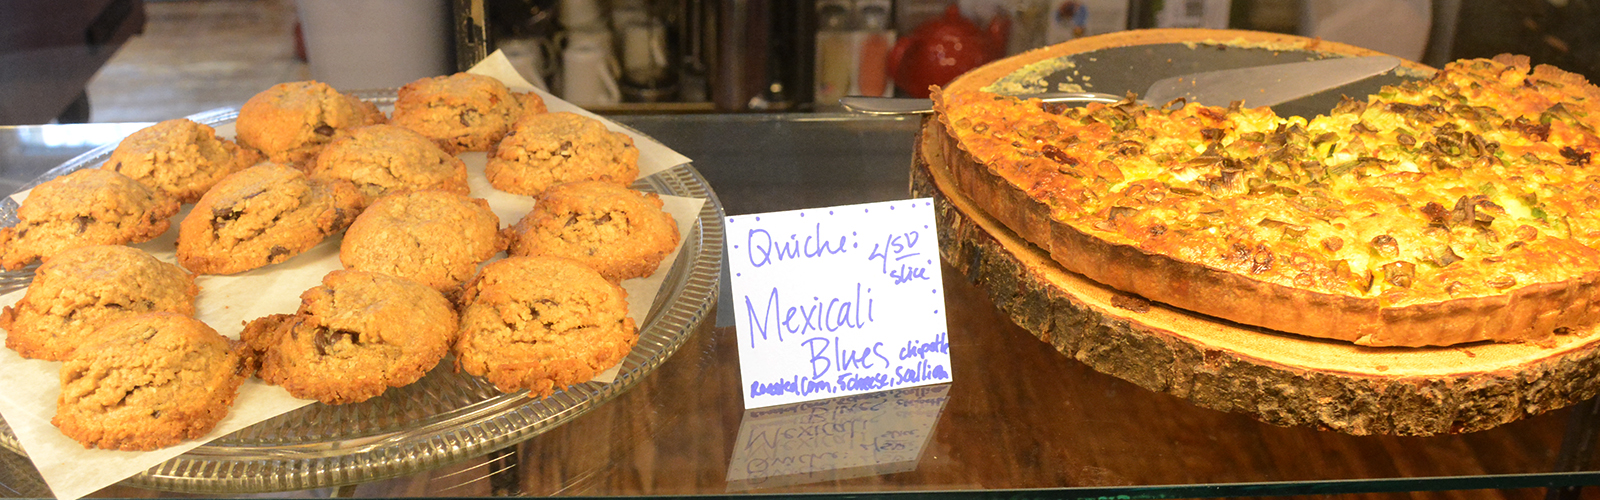 Om Nohm Gluten Free in Fredonia, N.Y., specializes in all-natural gluten-free food such as cookies and quiche, made with locally sourced ingredients.